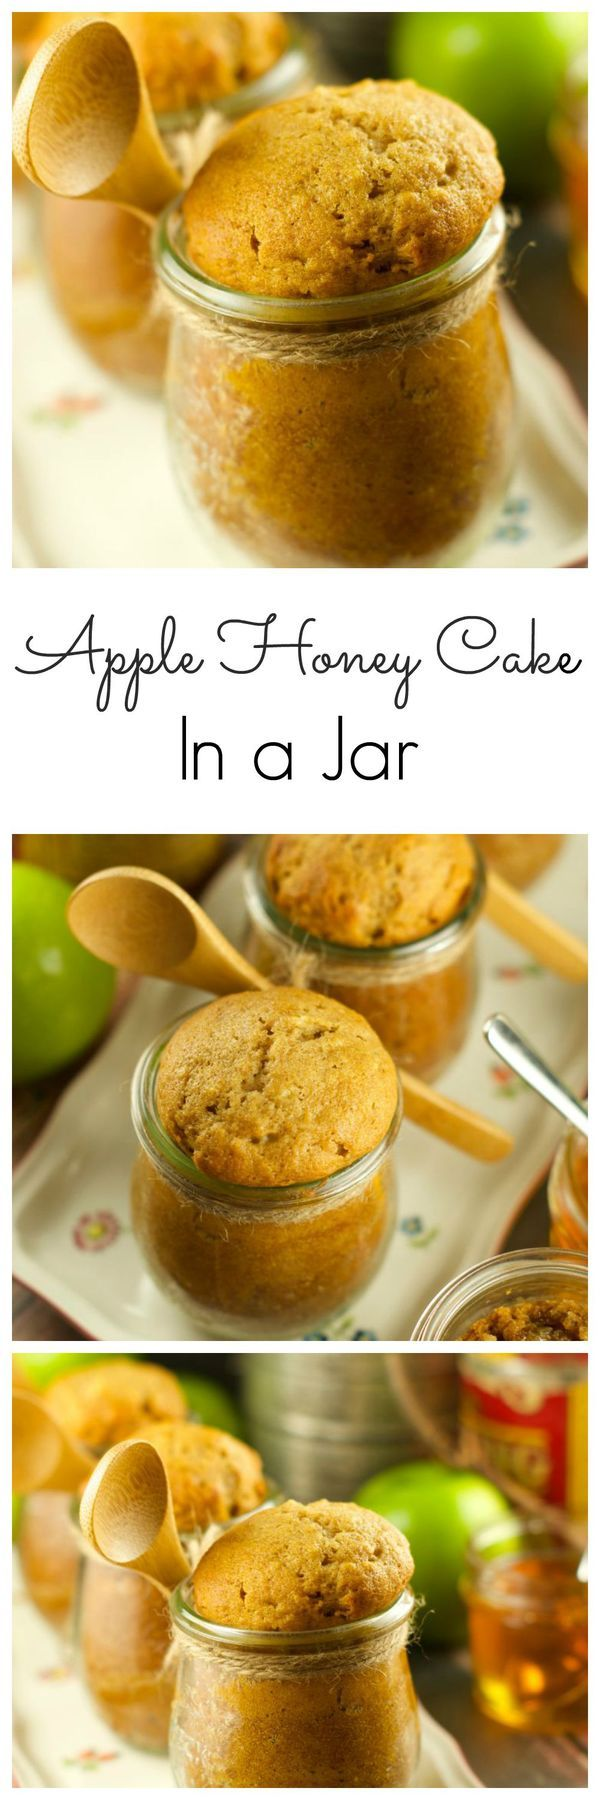 We love this Rosh Hashanah gift idea - Apple Honey Cake In A Jar: celebrate Rosh Hashanah with these delicious & moist apple honey cakes in a jar. Give them out as gifts or serve them for dessert.